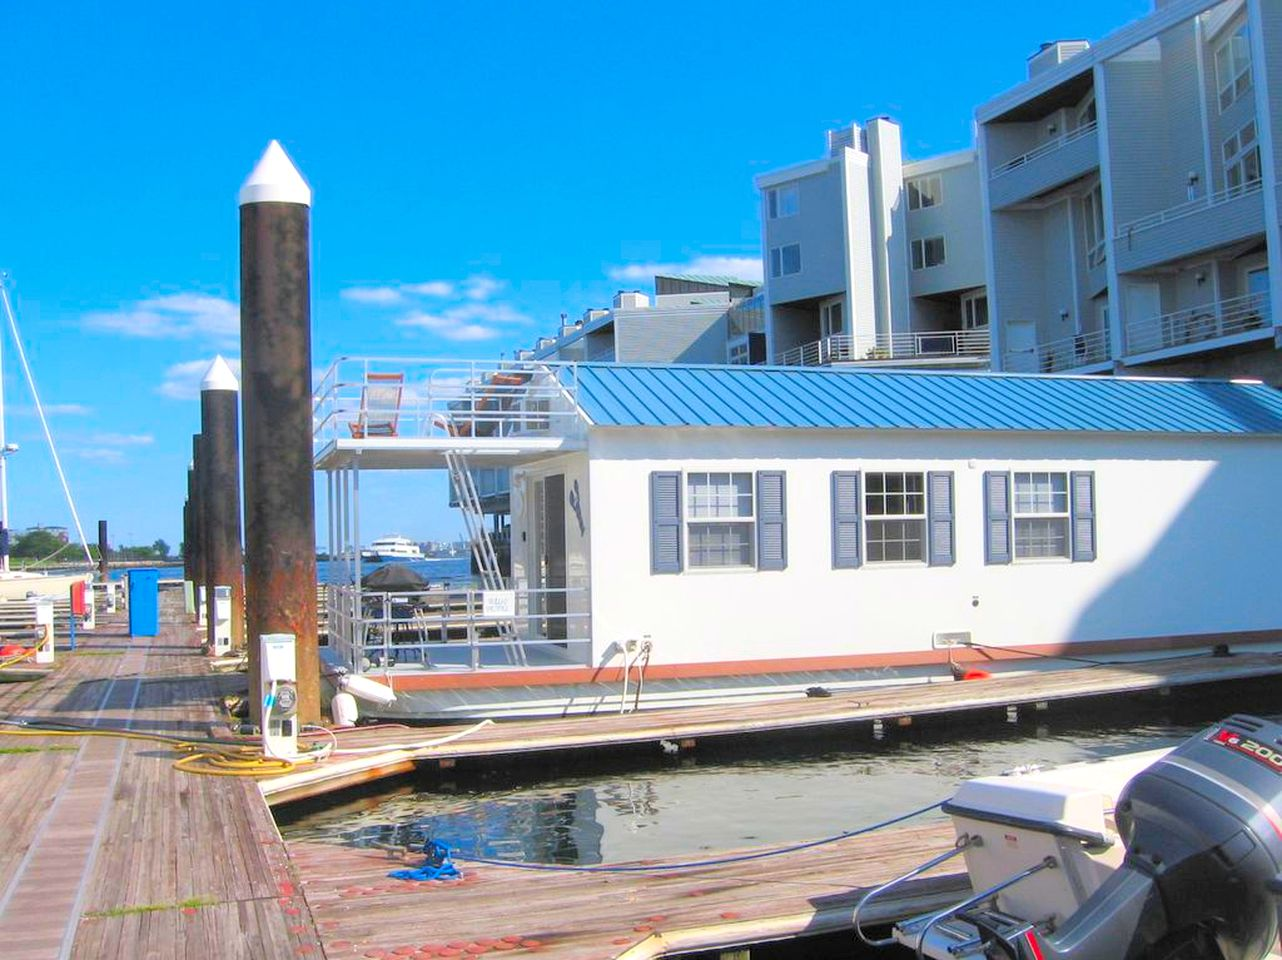 Houseboat for rent: Boston vacation rental in the marina.